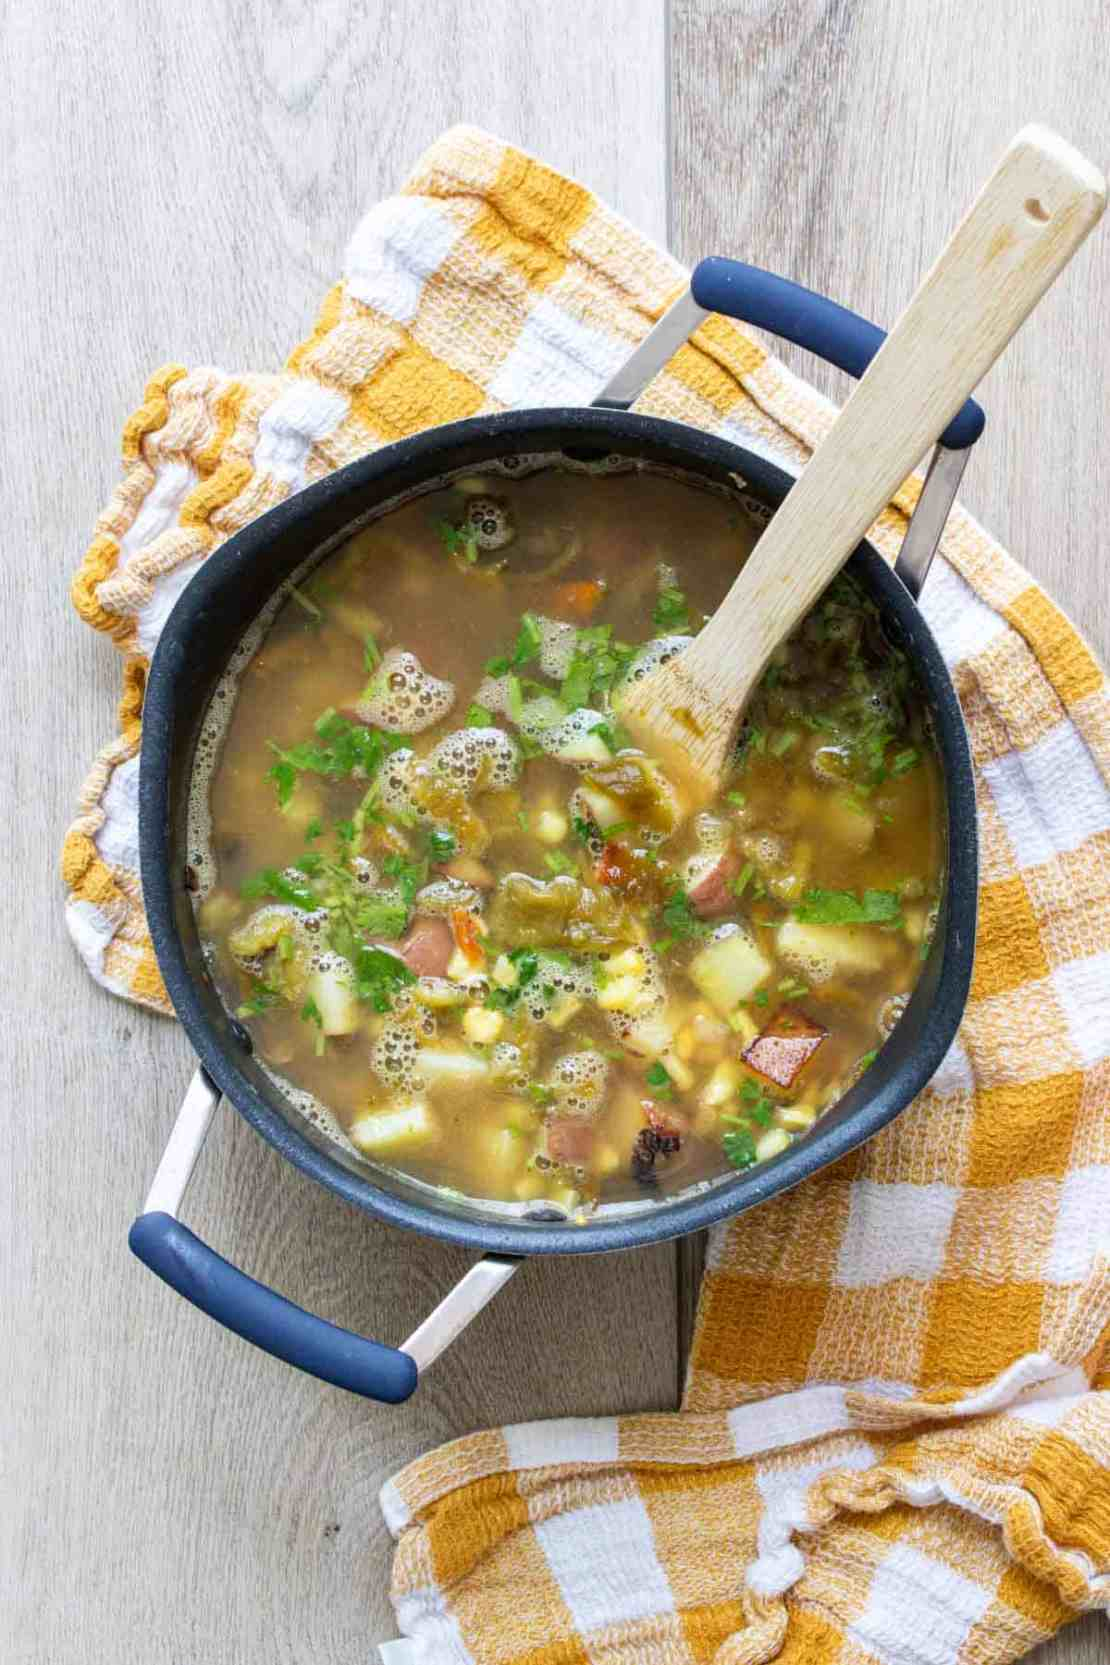 Wooden spoon stirring a veggie broth soup with herbs in a pot